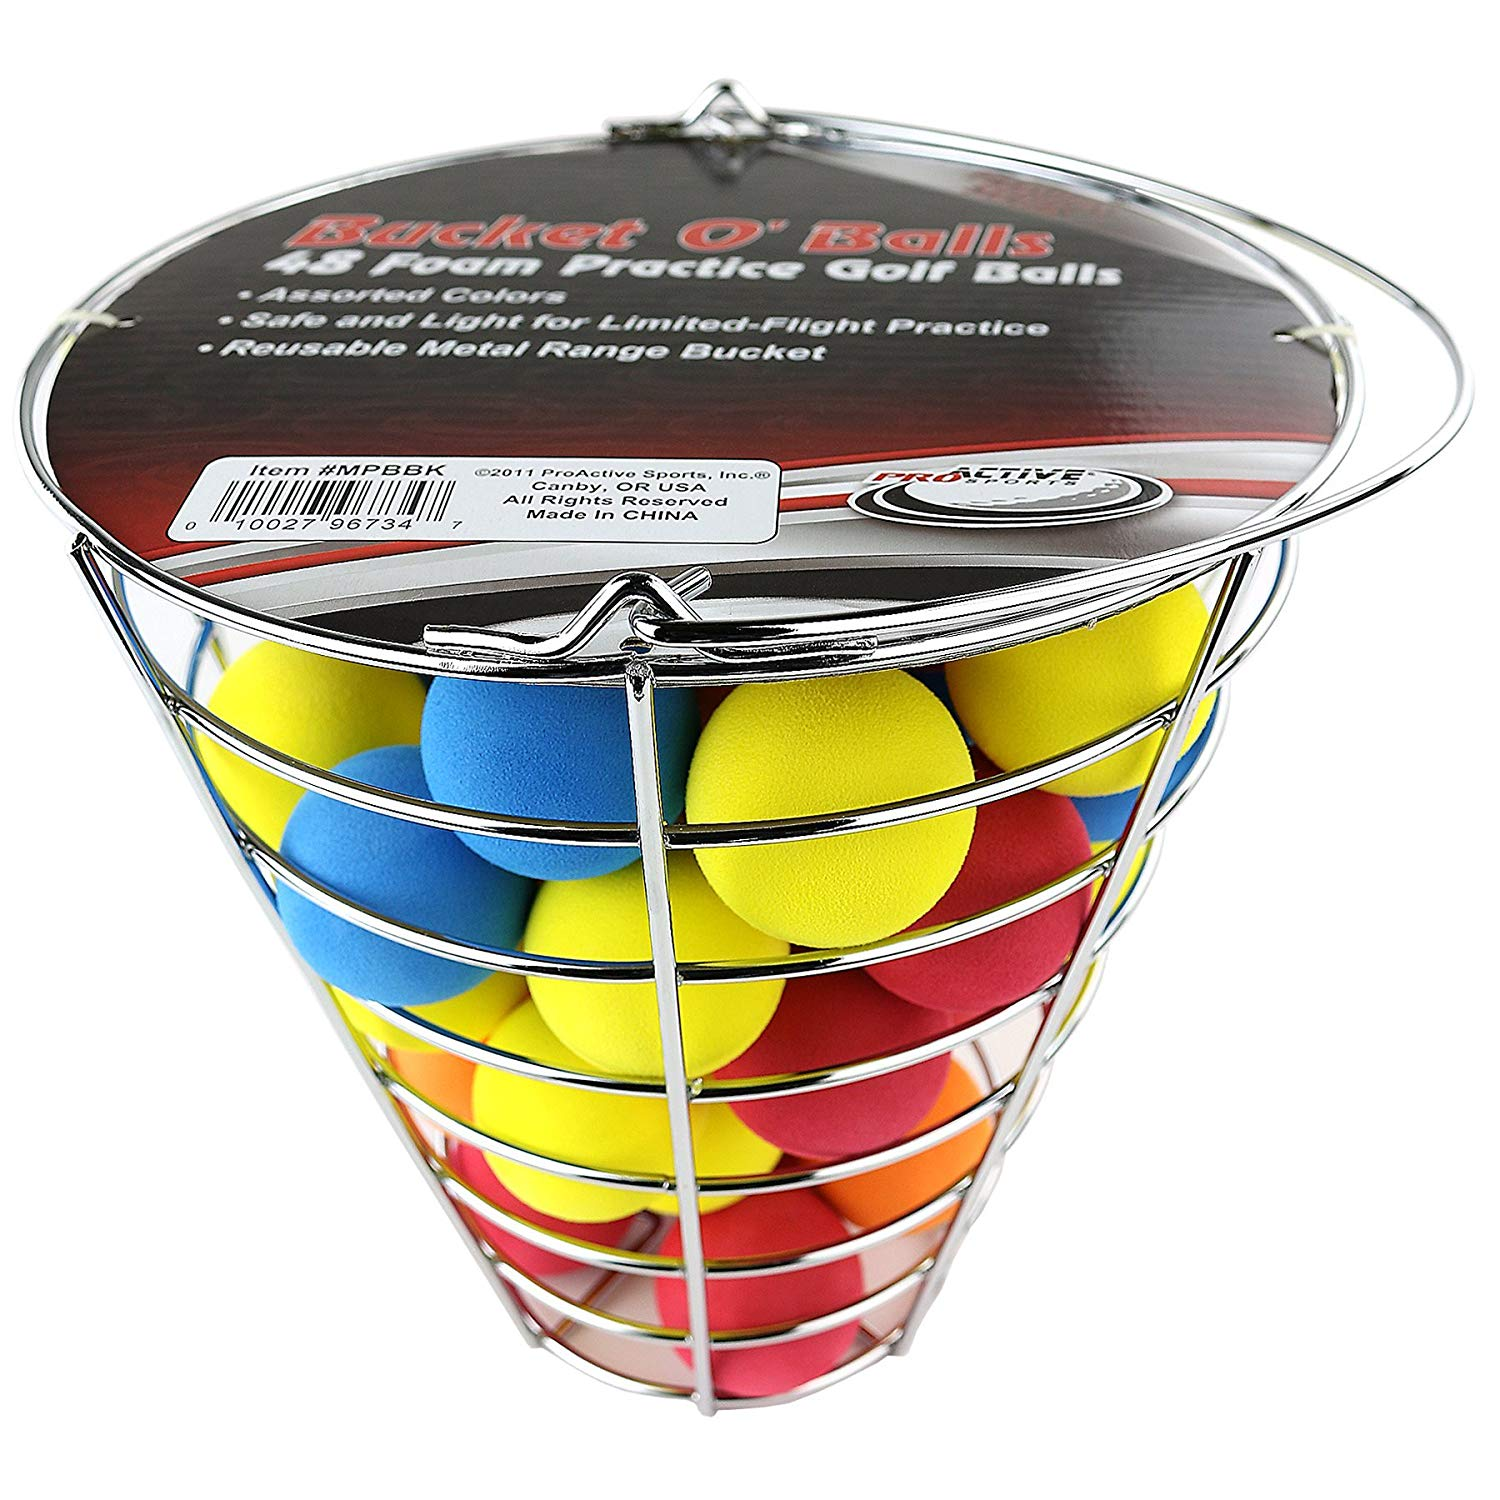 42 Foam Golf Balls in Bucket